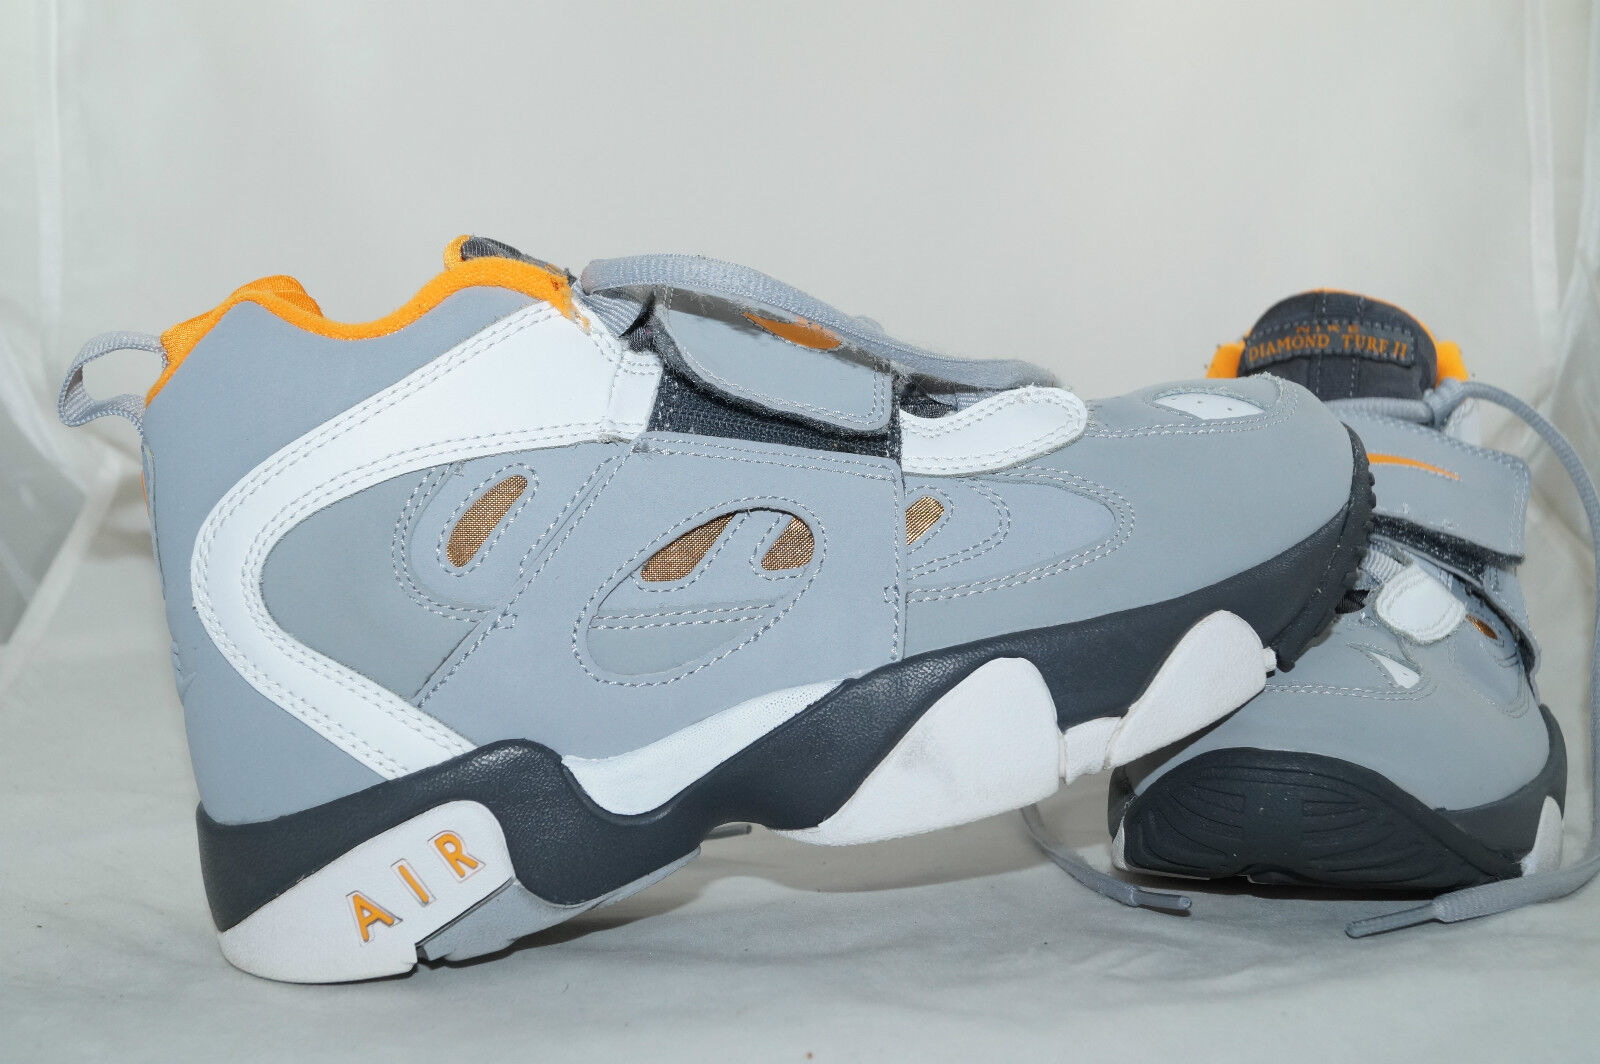 Nike Air Diamond Turf 2 Gr:38,5 - 38  Cross Training Turnschuhe